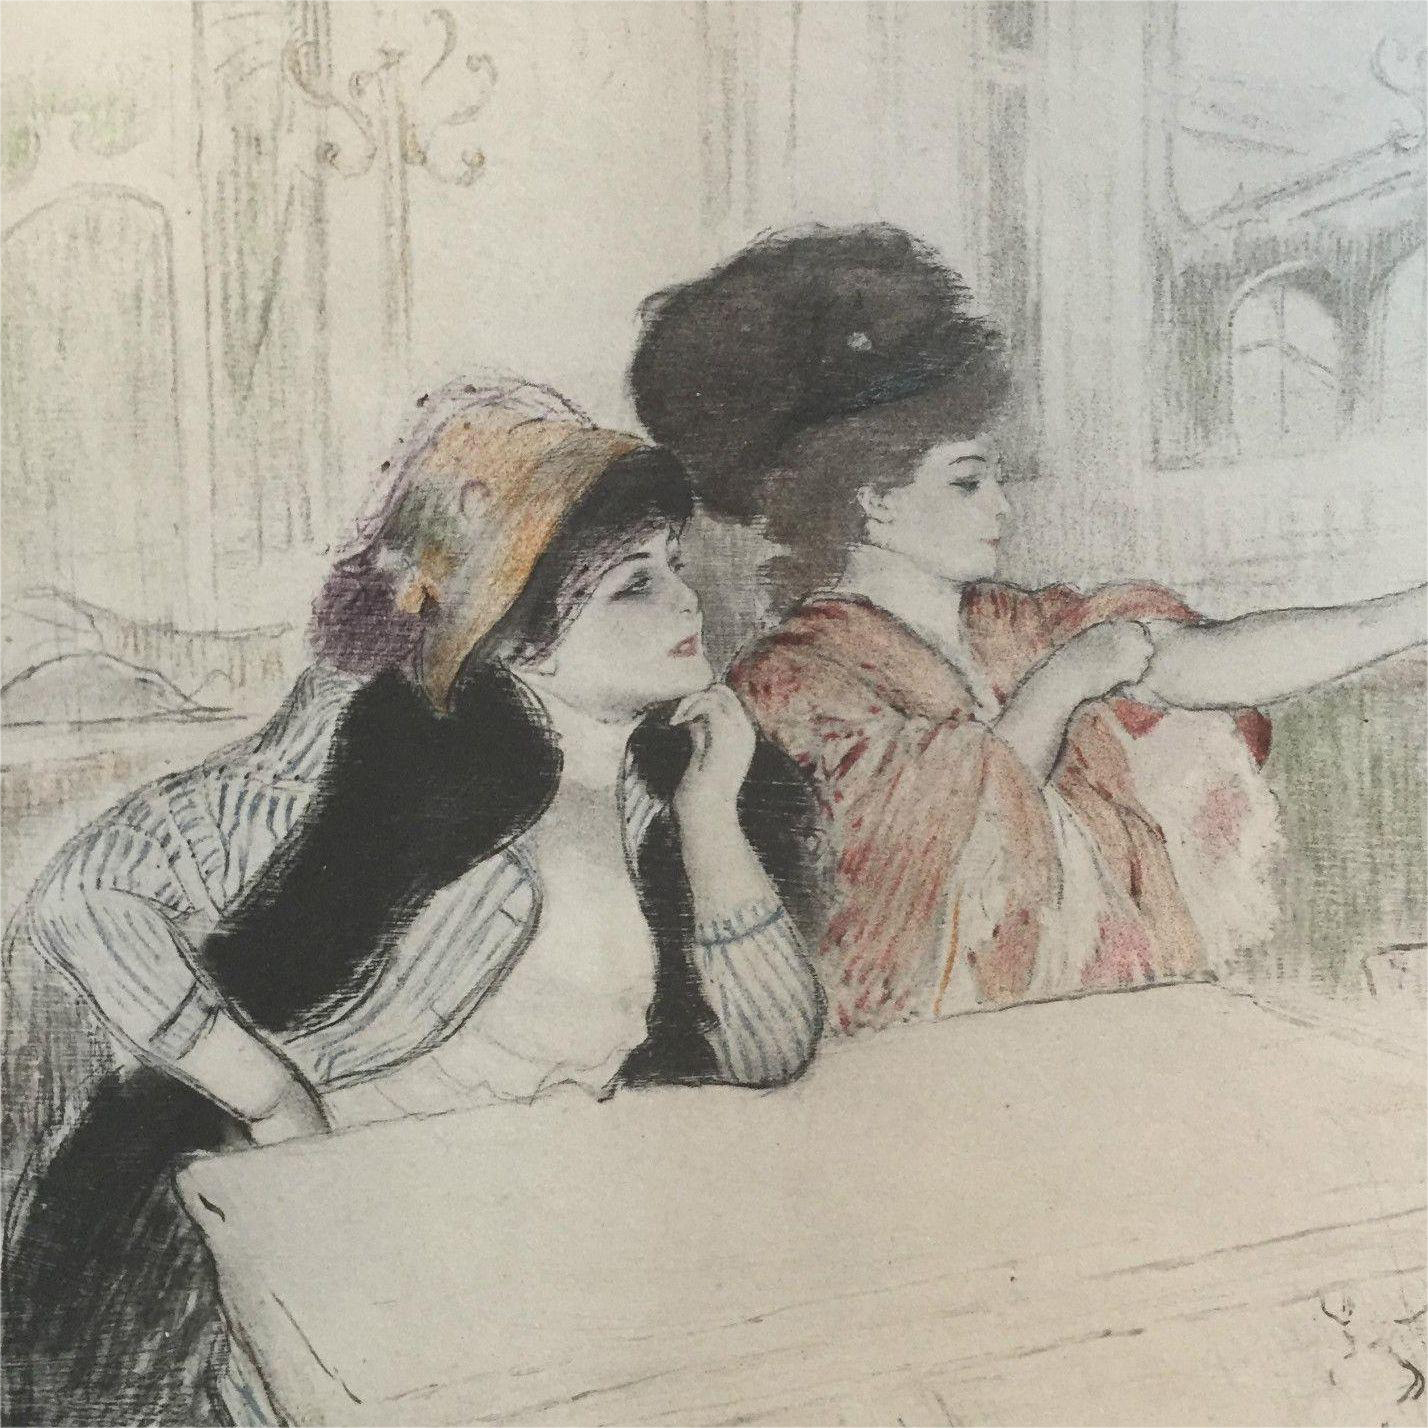 Antique Original Rare Signed Engraving and Aquatint 'Parisian Ladies' c1892